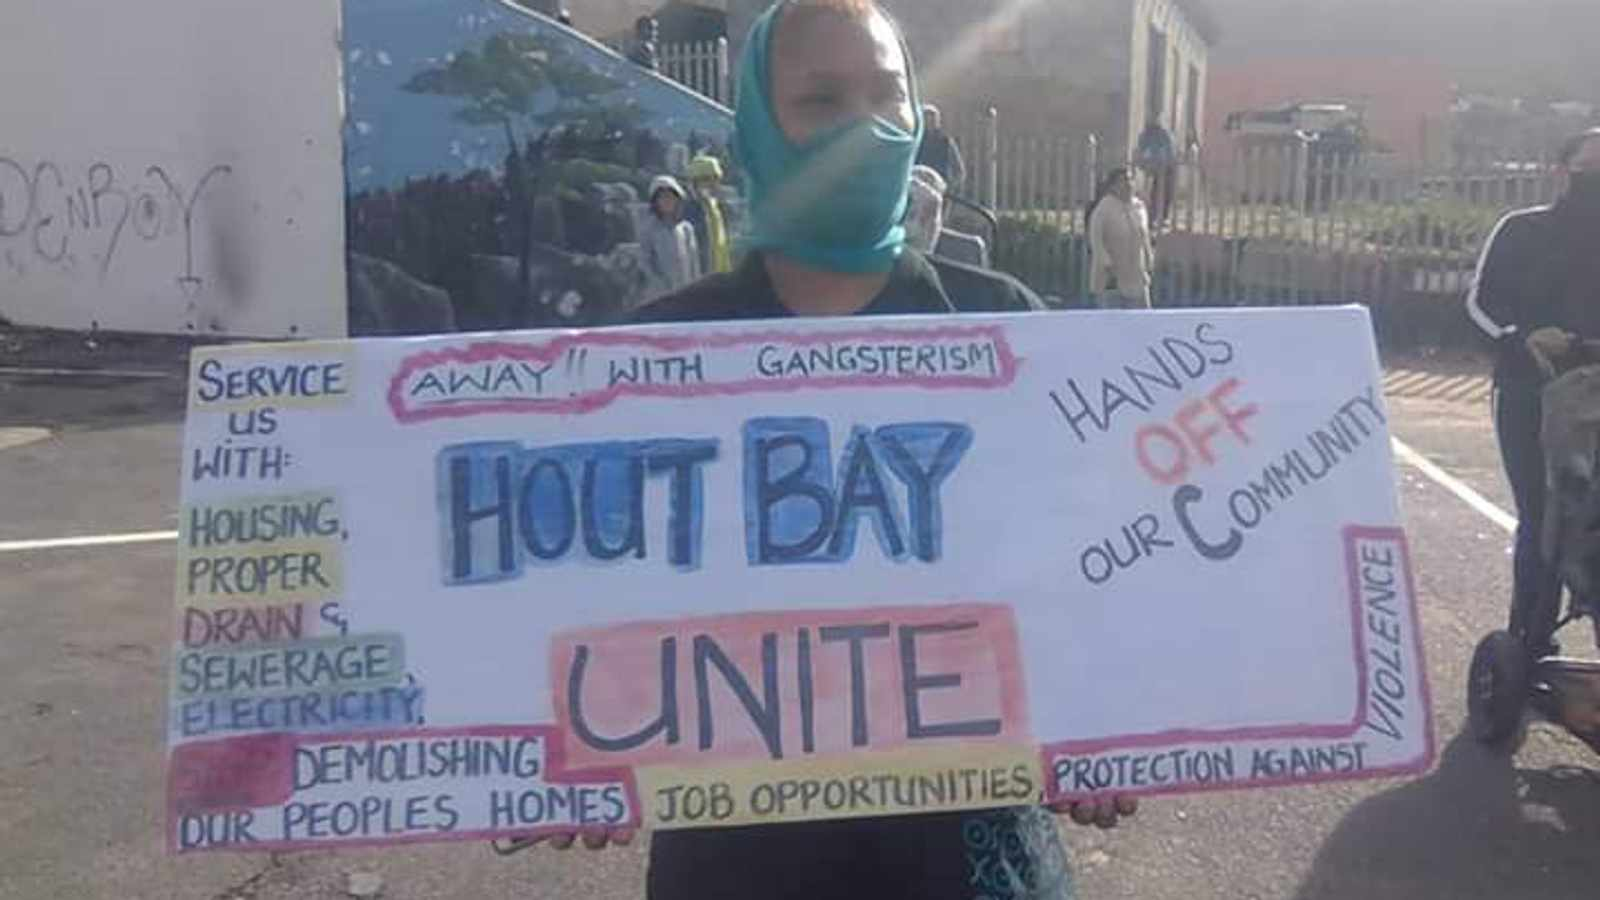 Hangberg residents protest against evictions